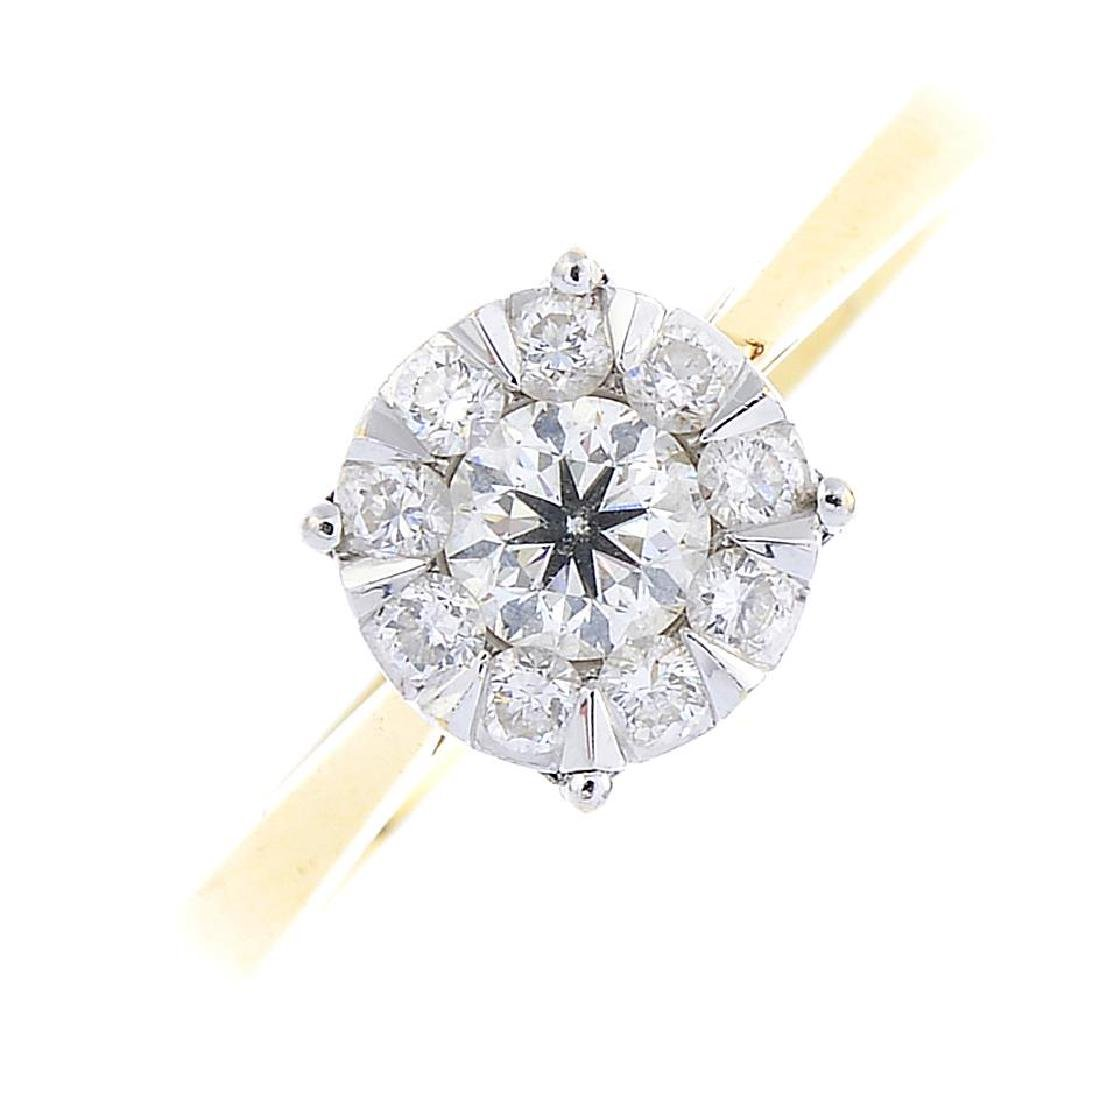 A diamond cluster ring. The brilliant-cut diamond, with